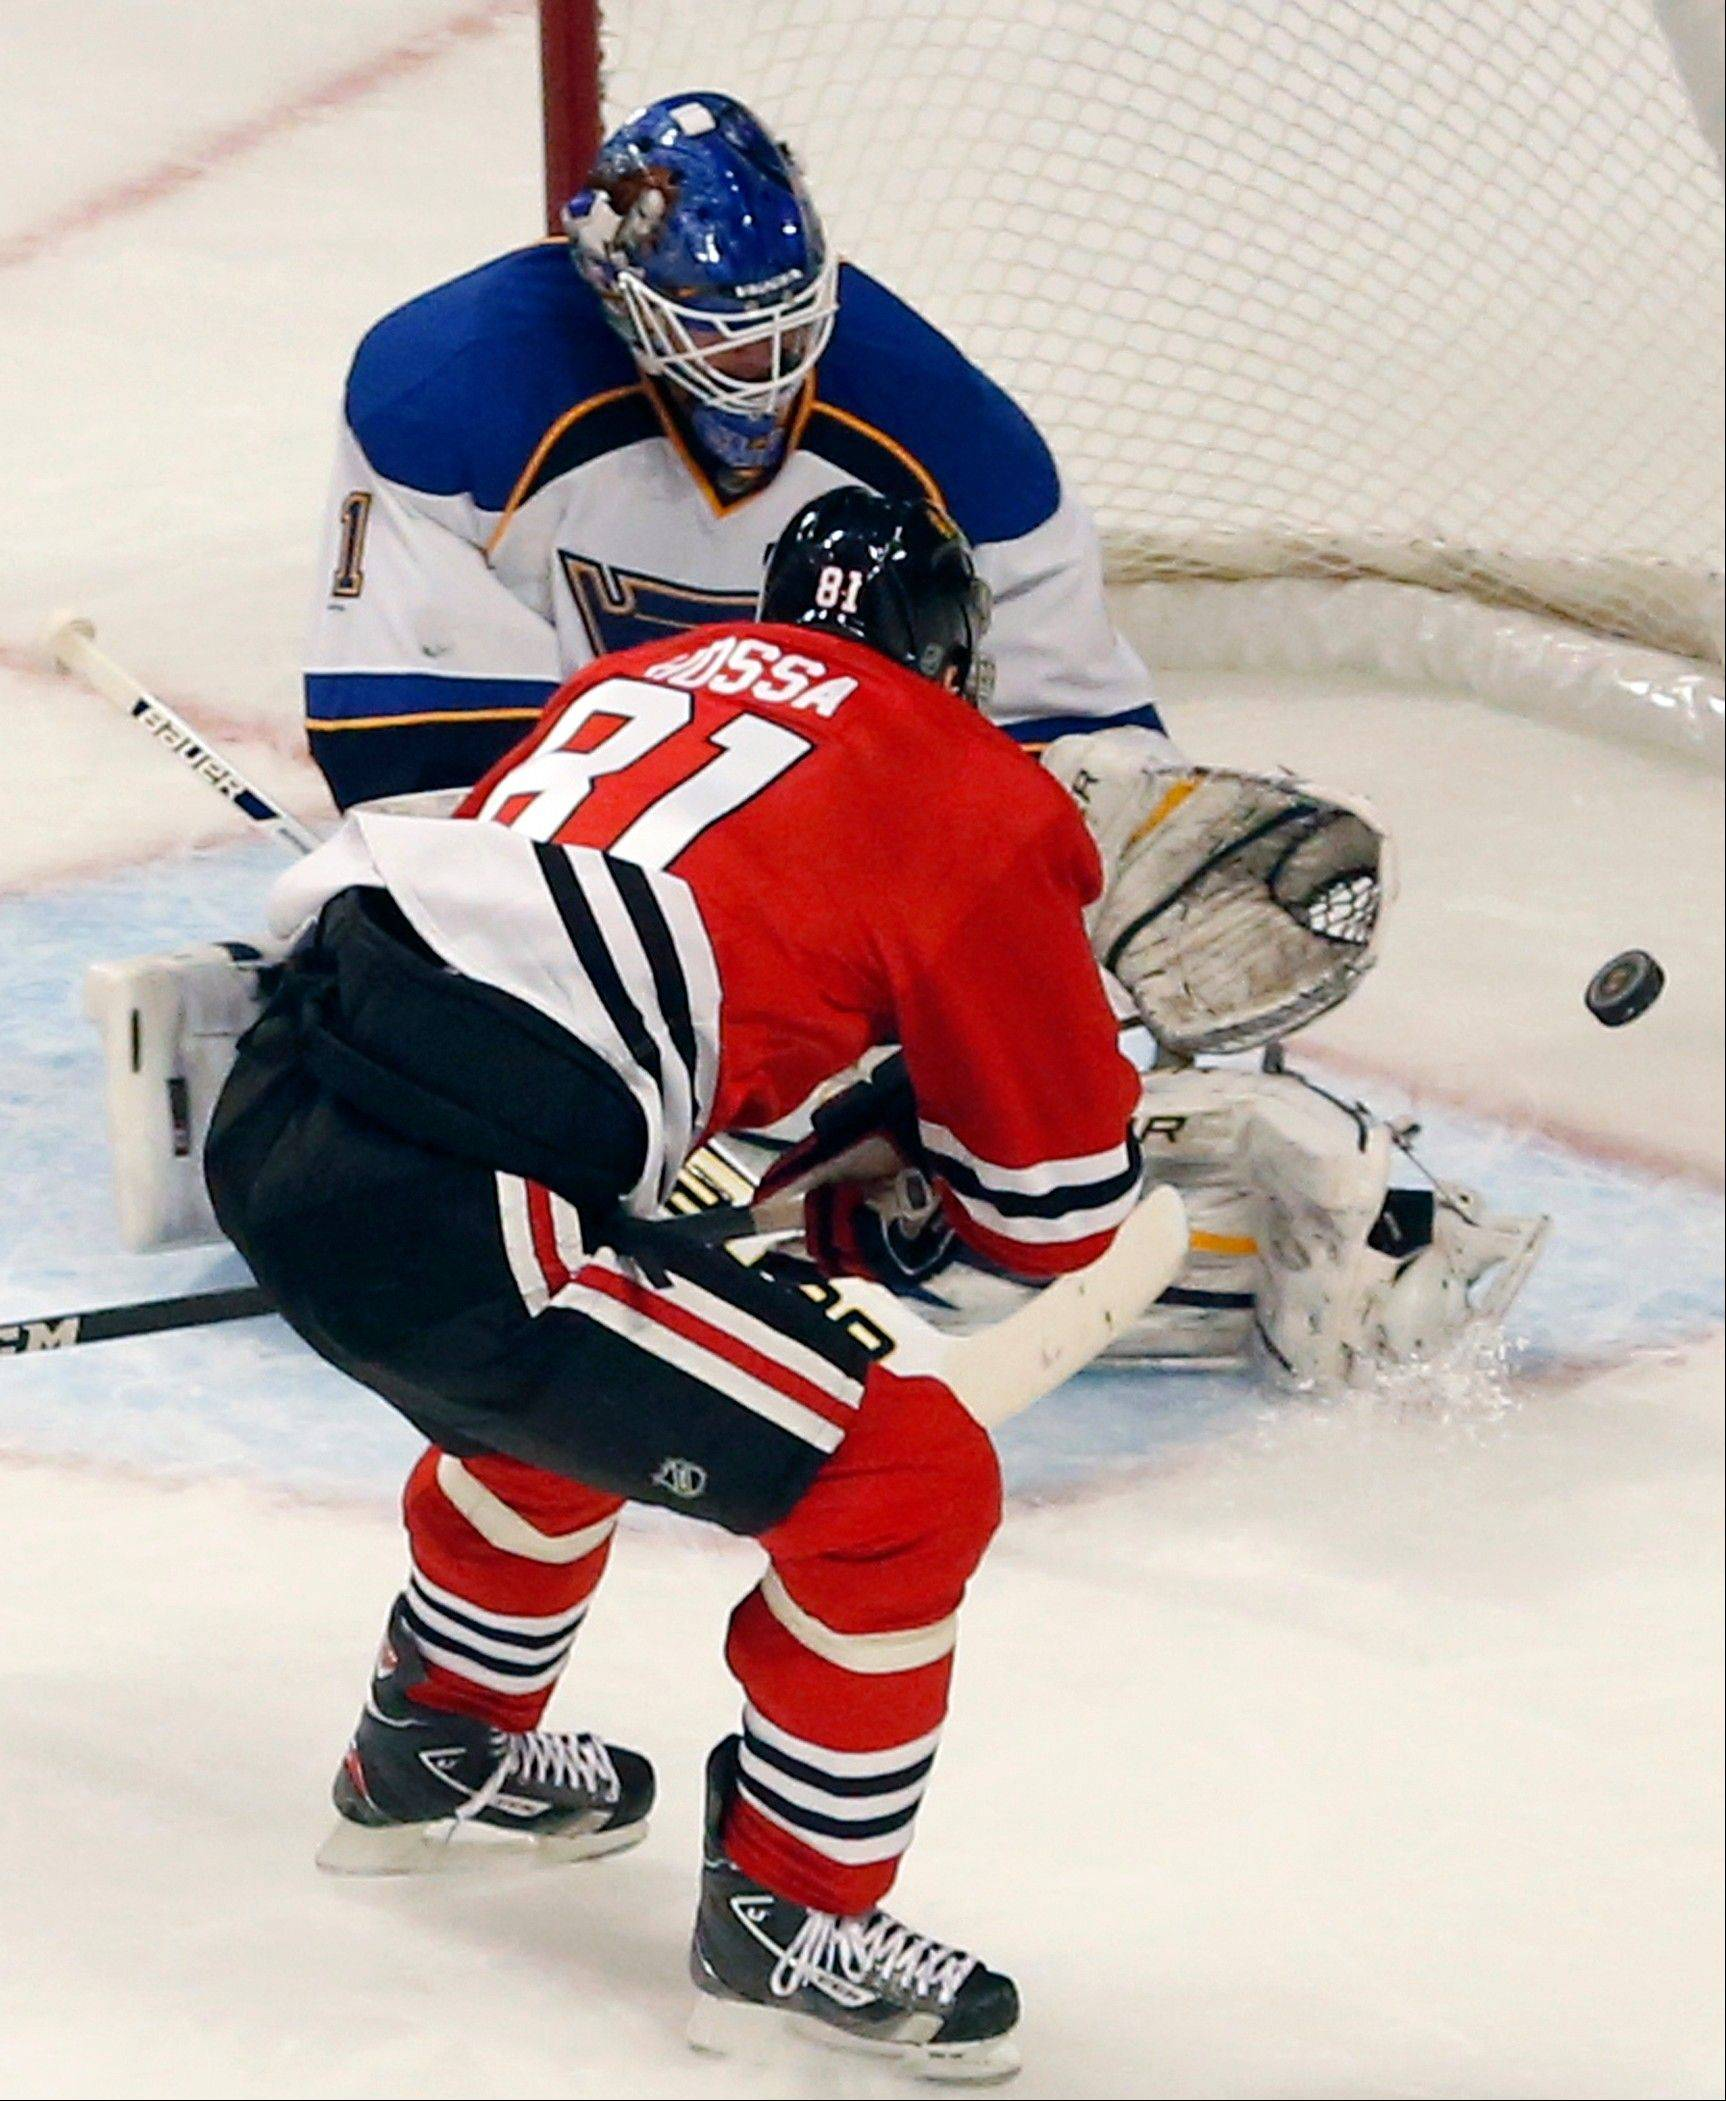 St. Louis Blues goalie Brian Elliott (1) makes a save on a shot by Chicago Blackhawks right wing Marian Hossa (81) during the Hawks 3-2 win over the Blues Tuesday night at the United Center.